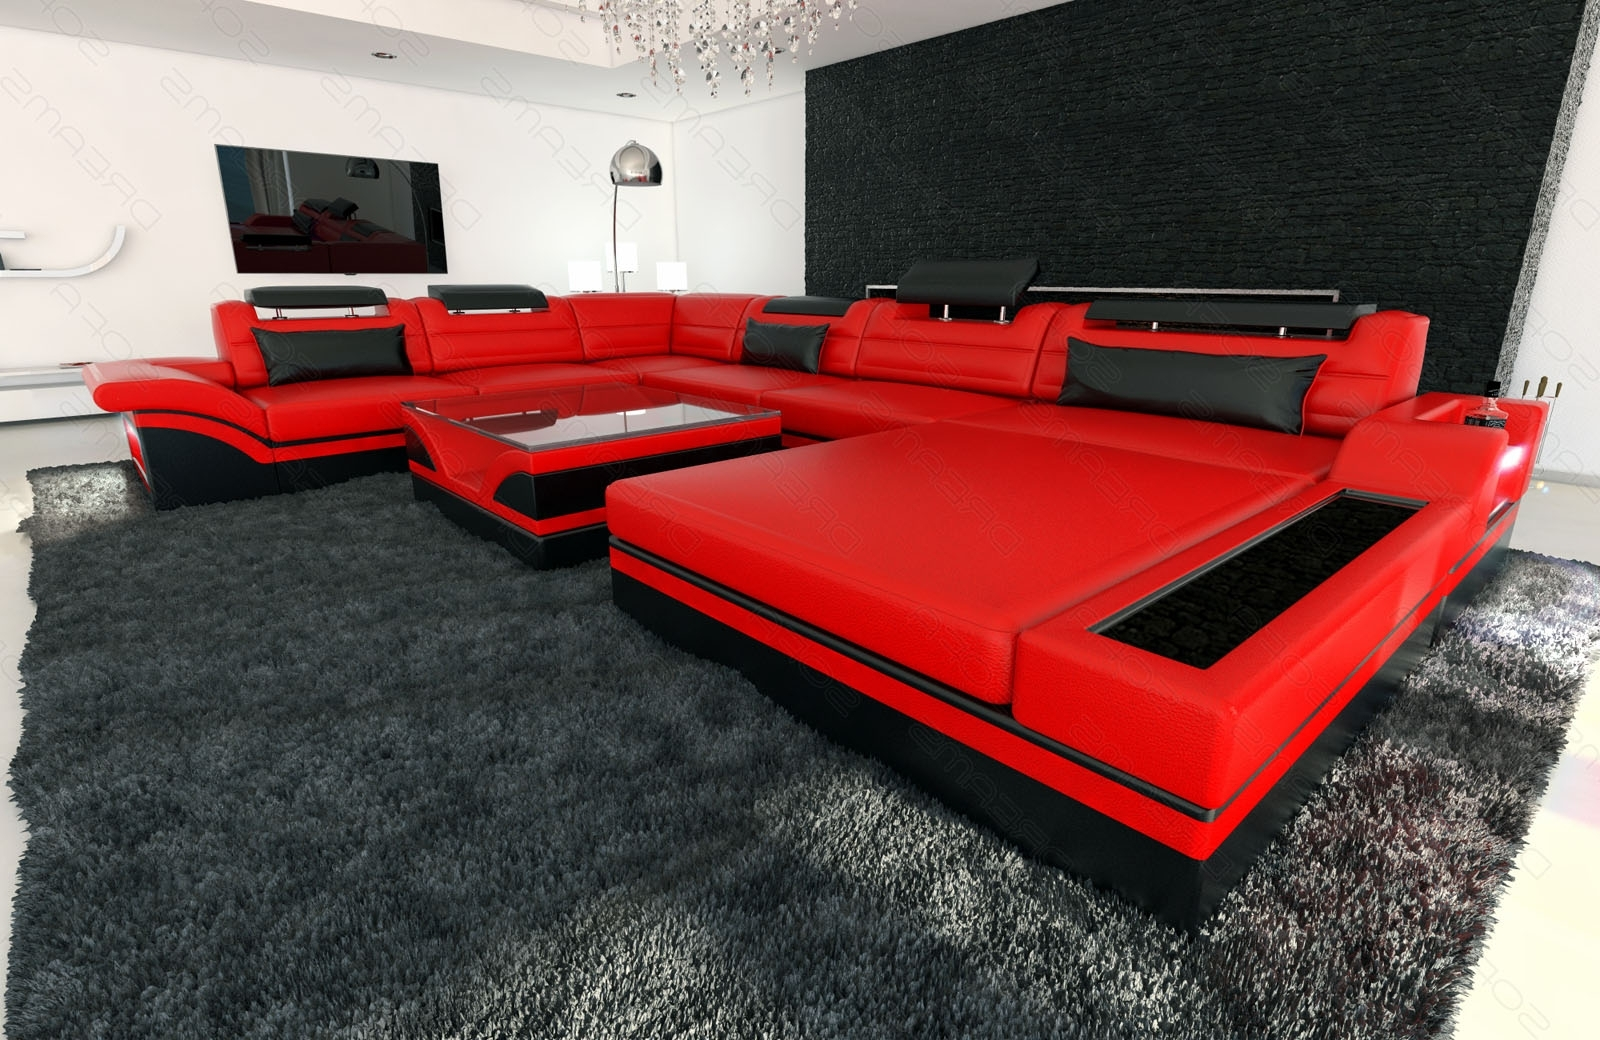 Ebay In Red And Black Sofas (View 7 of 20)